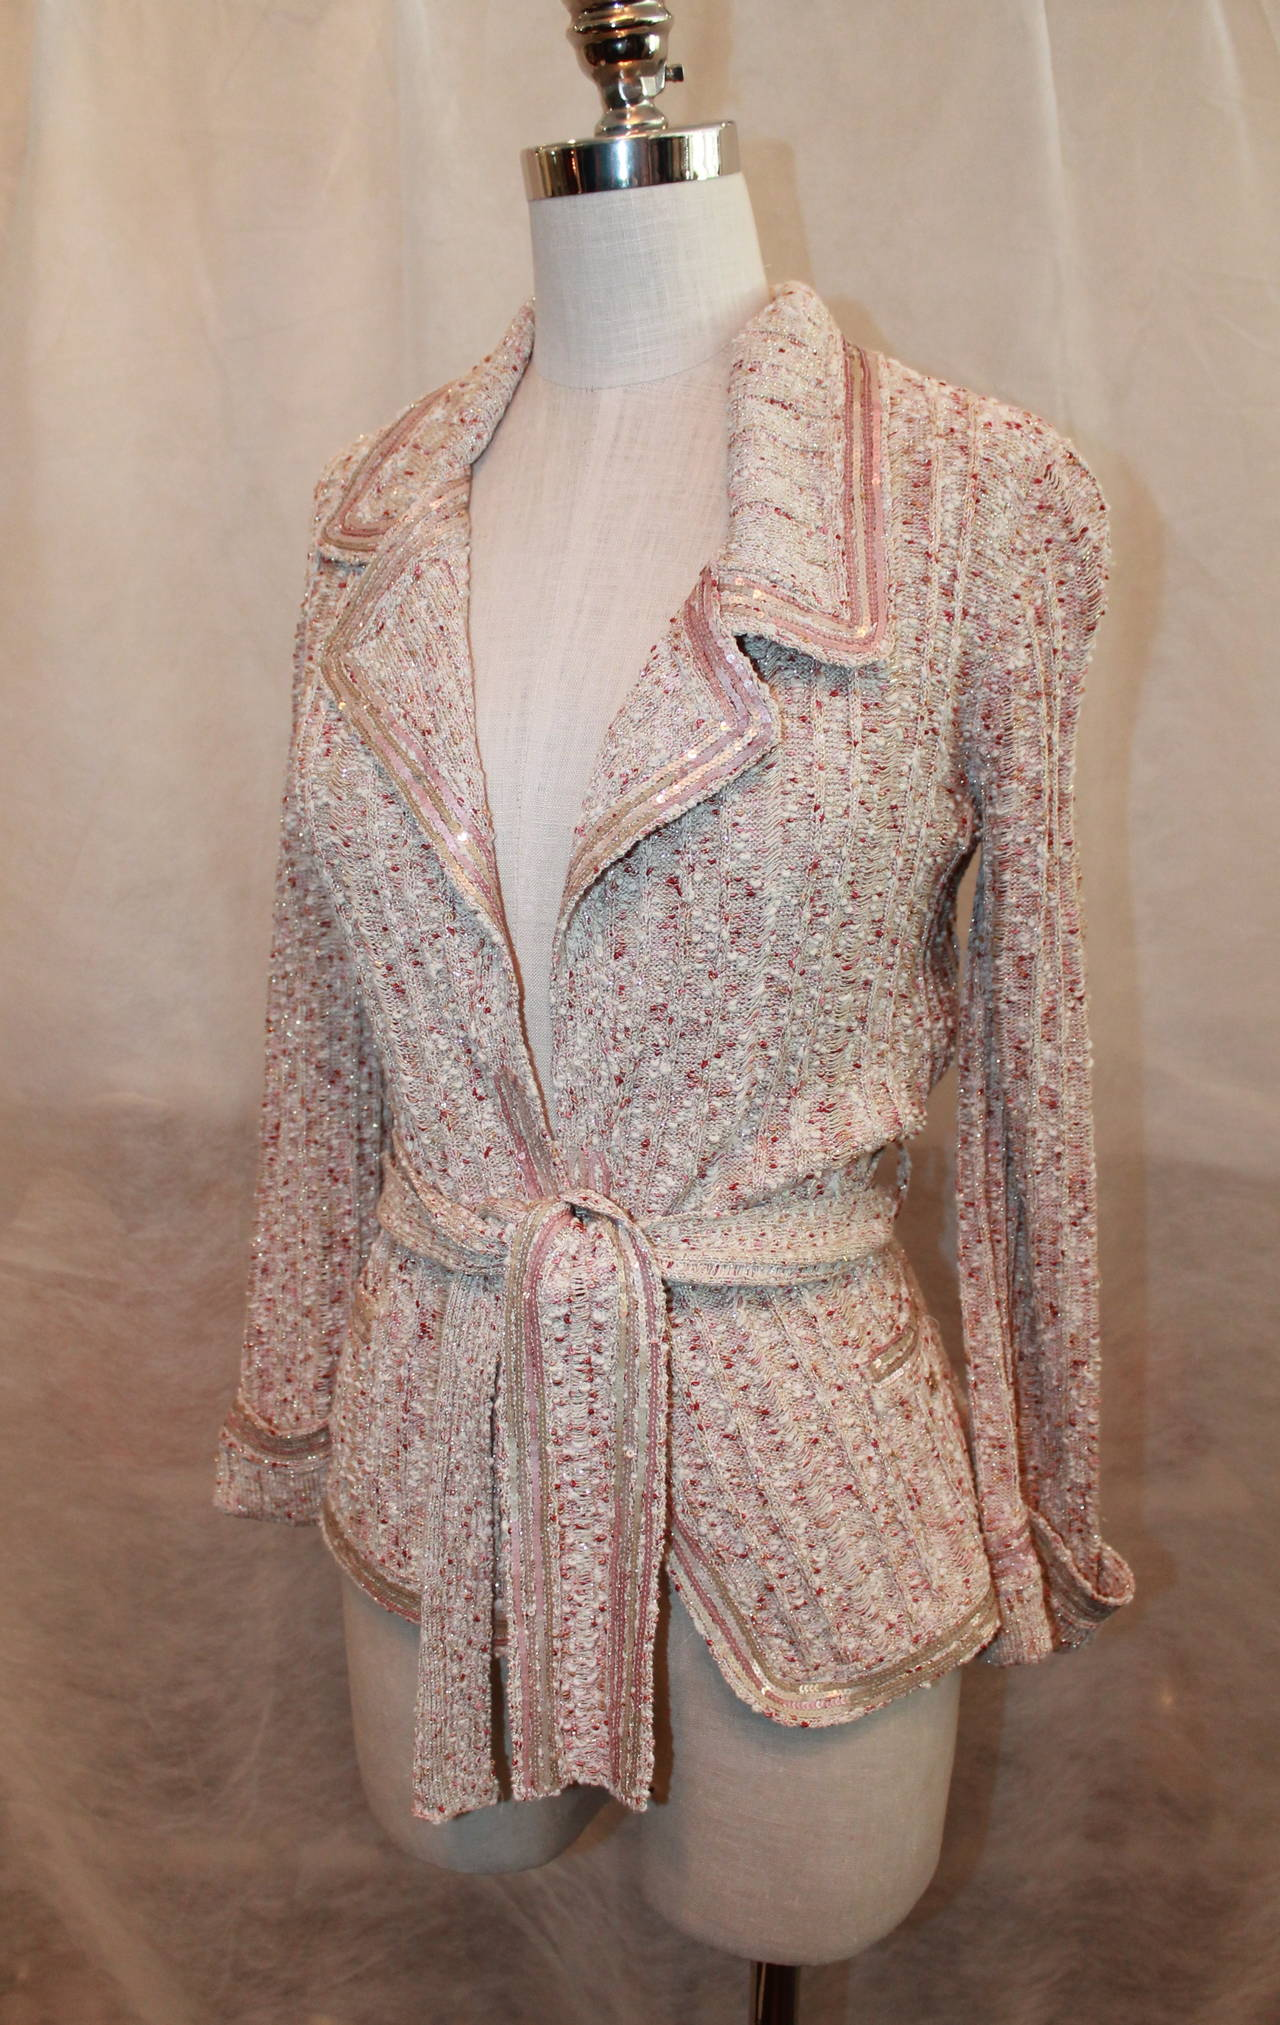 Chanel Beige Knit Jacket with Sequins - Size 40 - Circa 2006 2